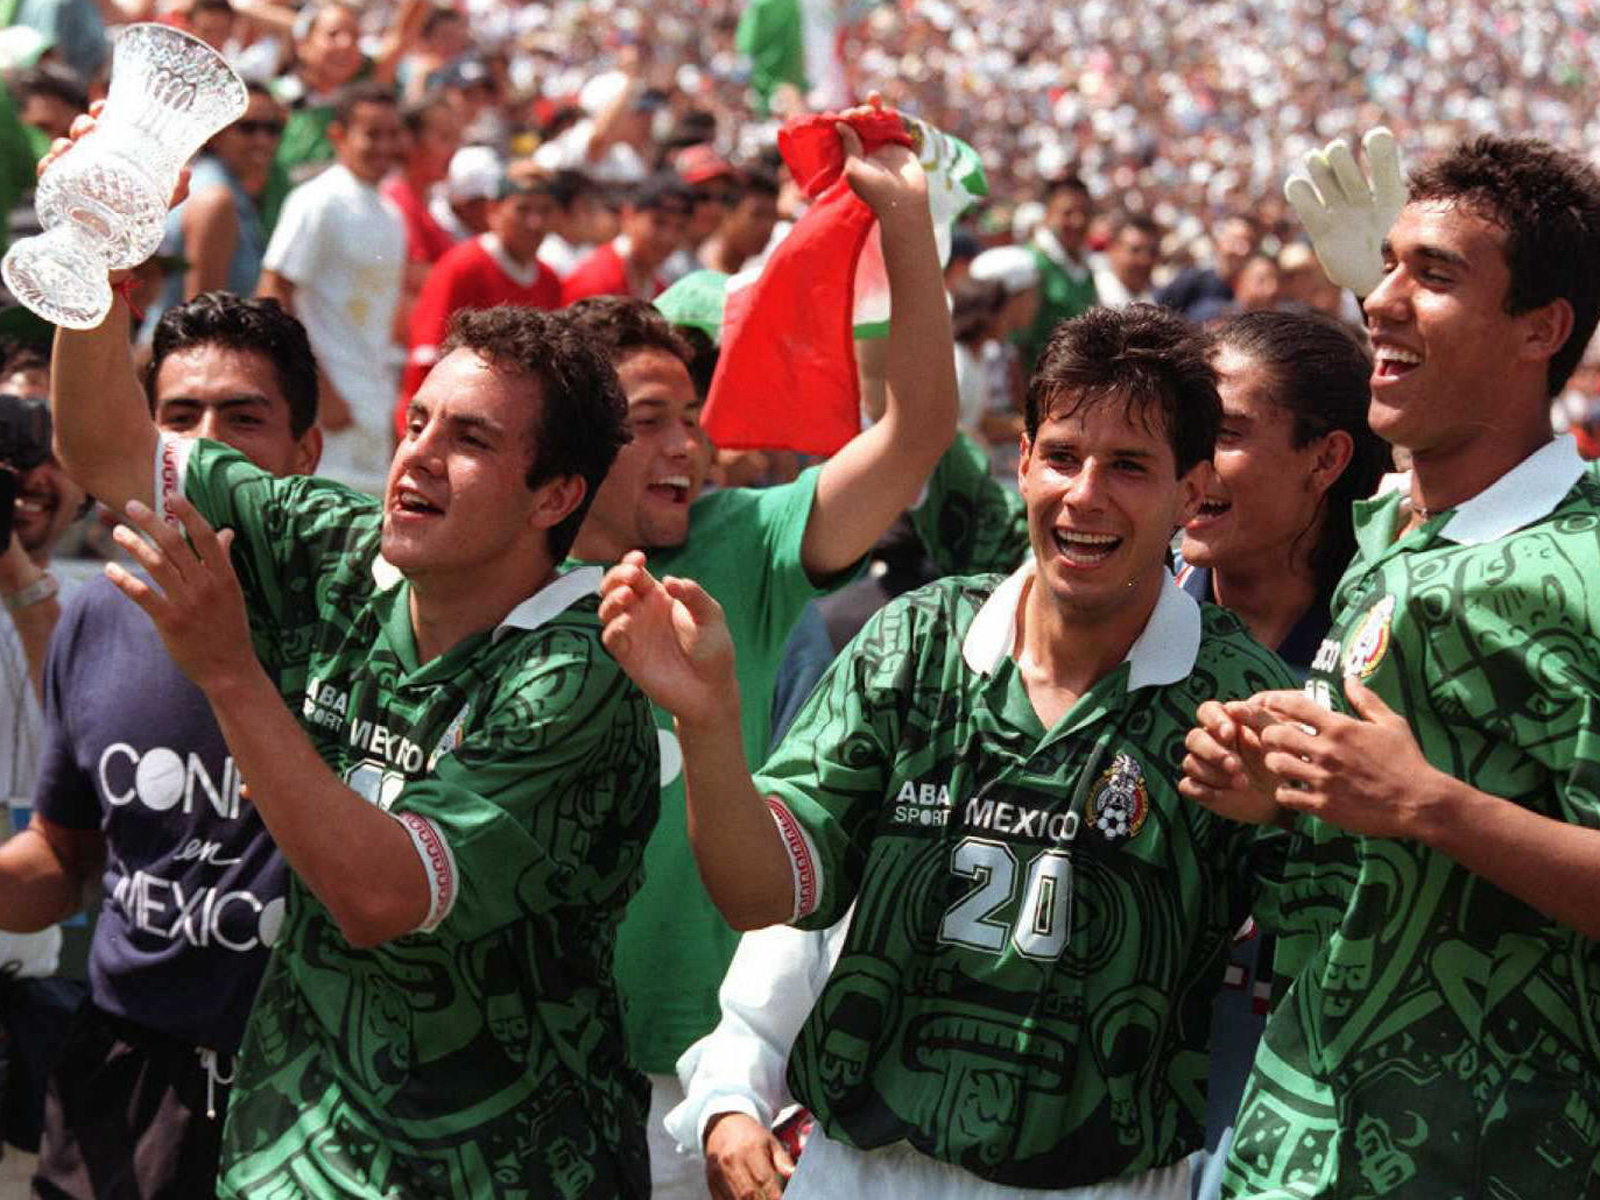 Blanco lifts the 1996 U.S. Cup at the Rose Bowl after his goal helped Mexico secure a 2-2 draw against the USA in the final, which was good enough to claim the title.